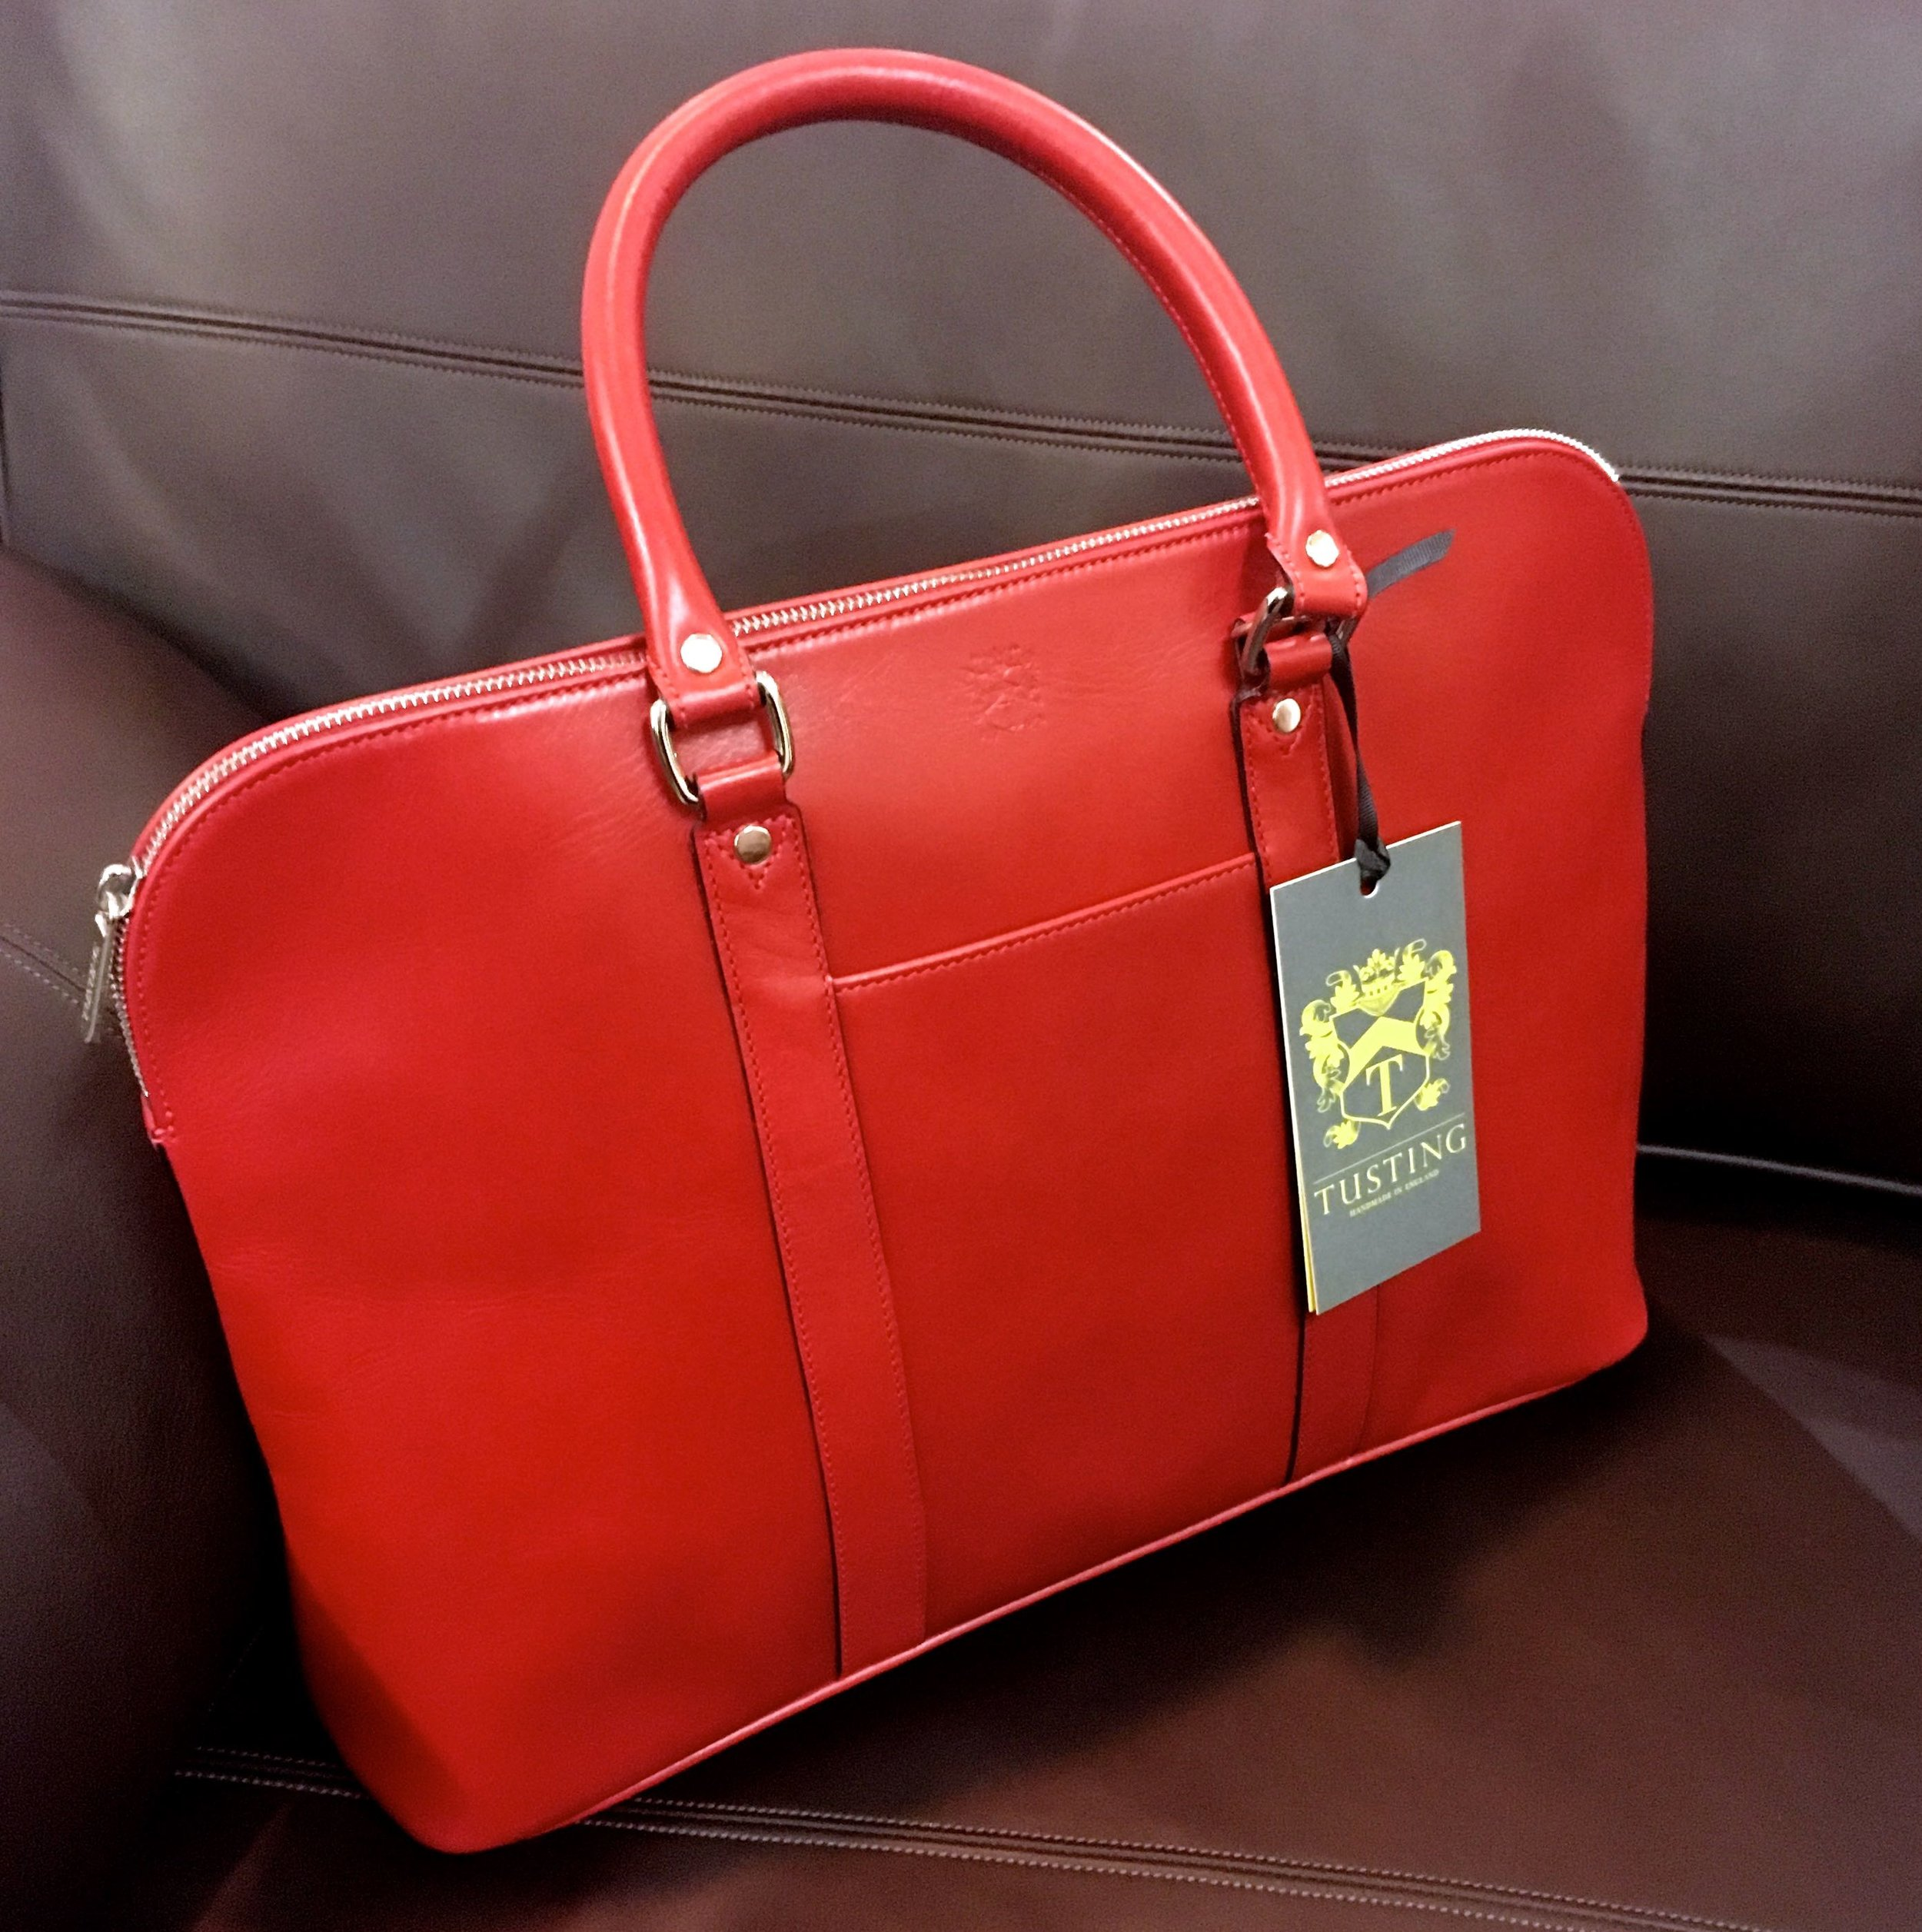 DONNA LEATHER HANDBAG IN CRIMSON RED